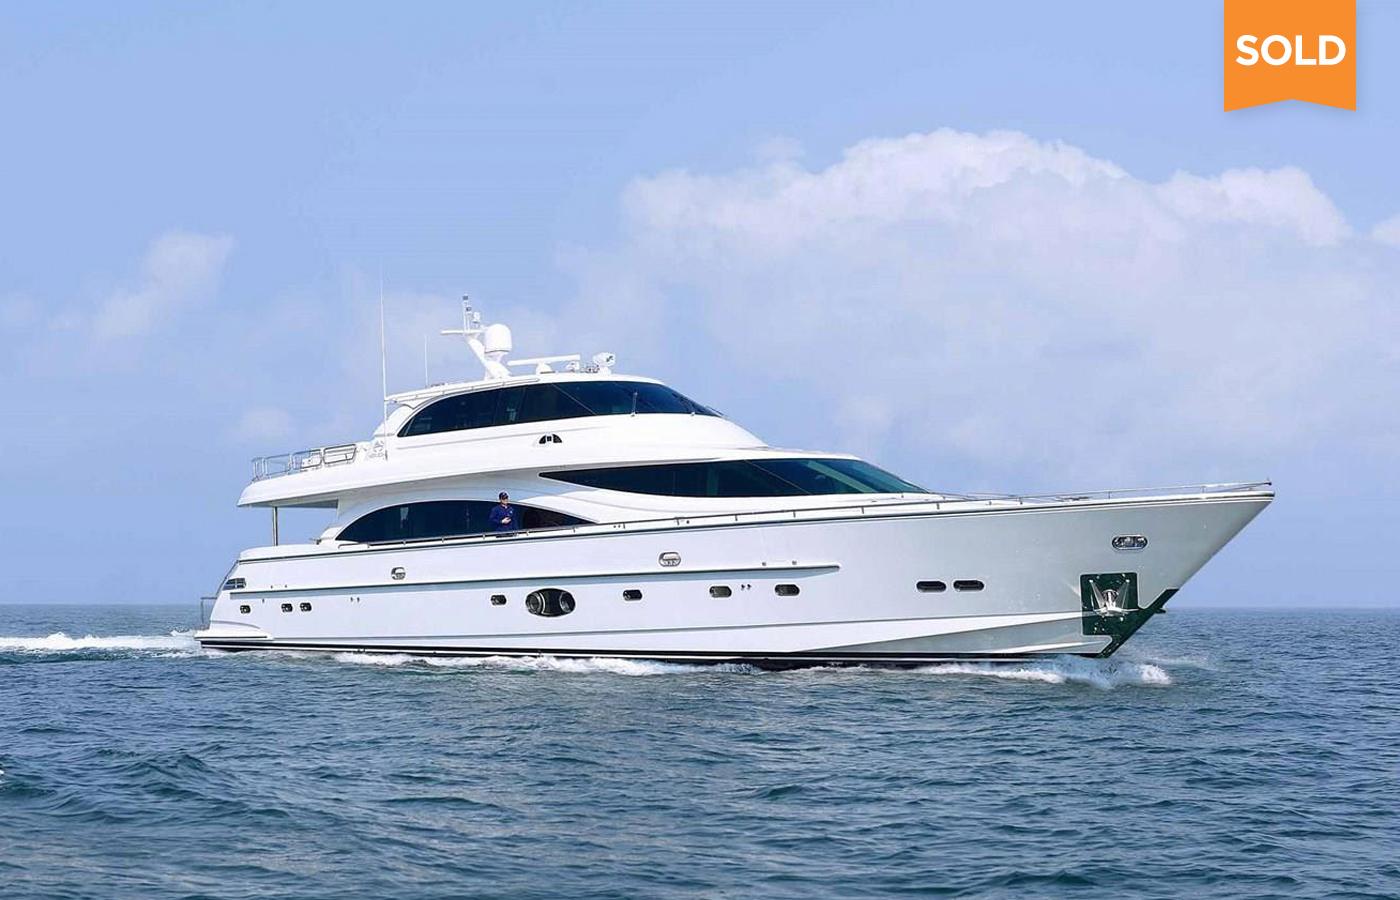 88 Horizon Motor Yacht Sold By Peter Quintal